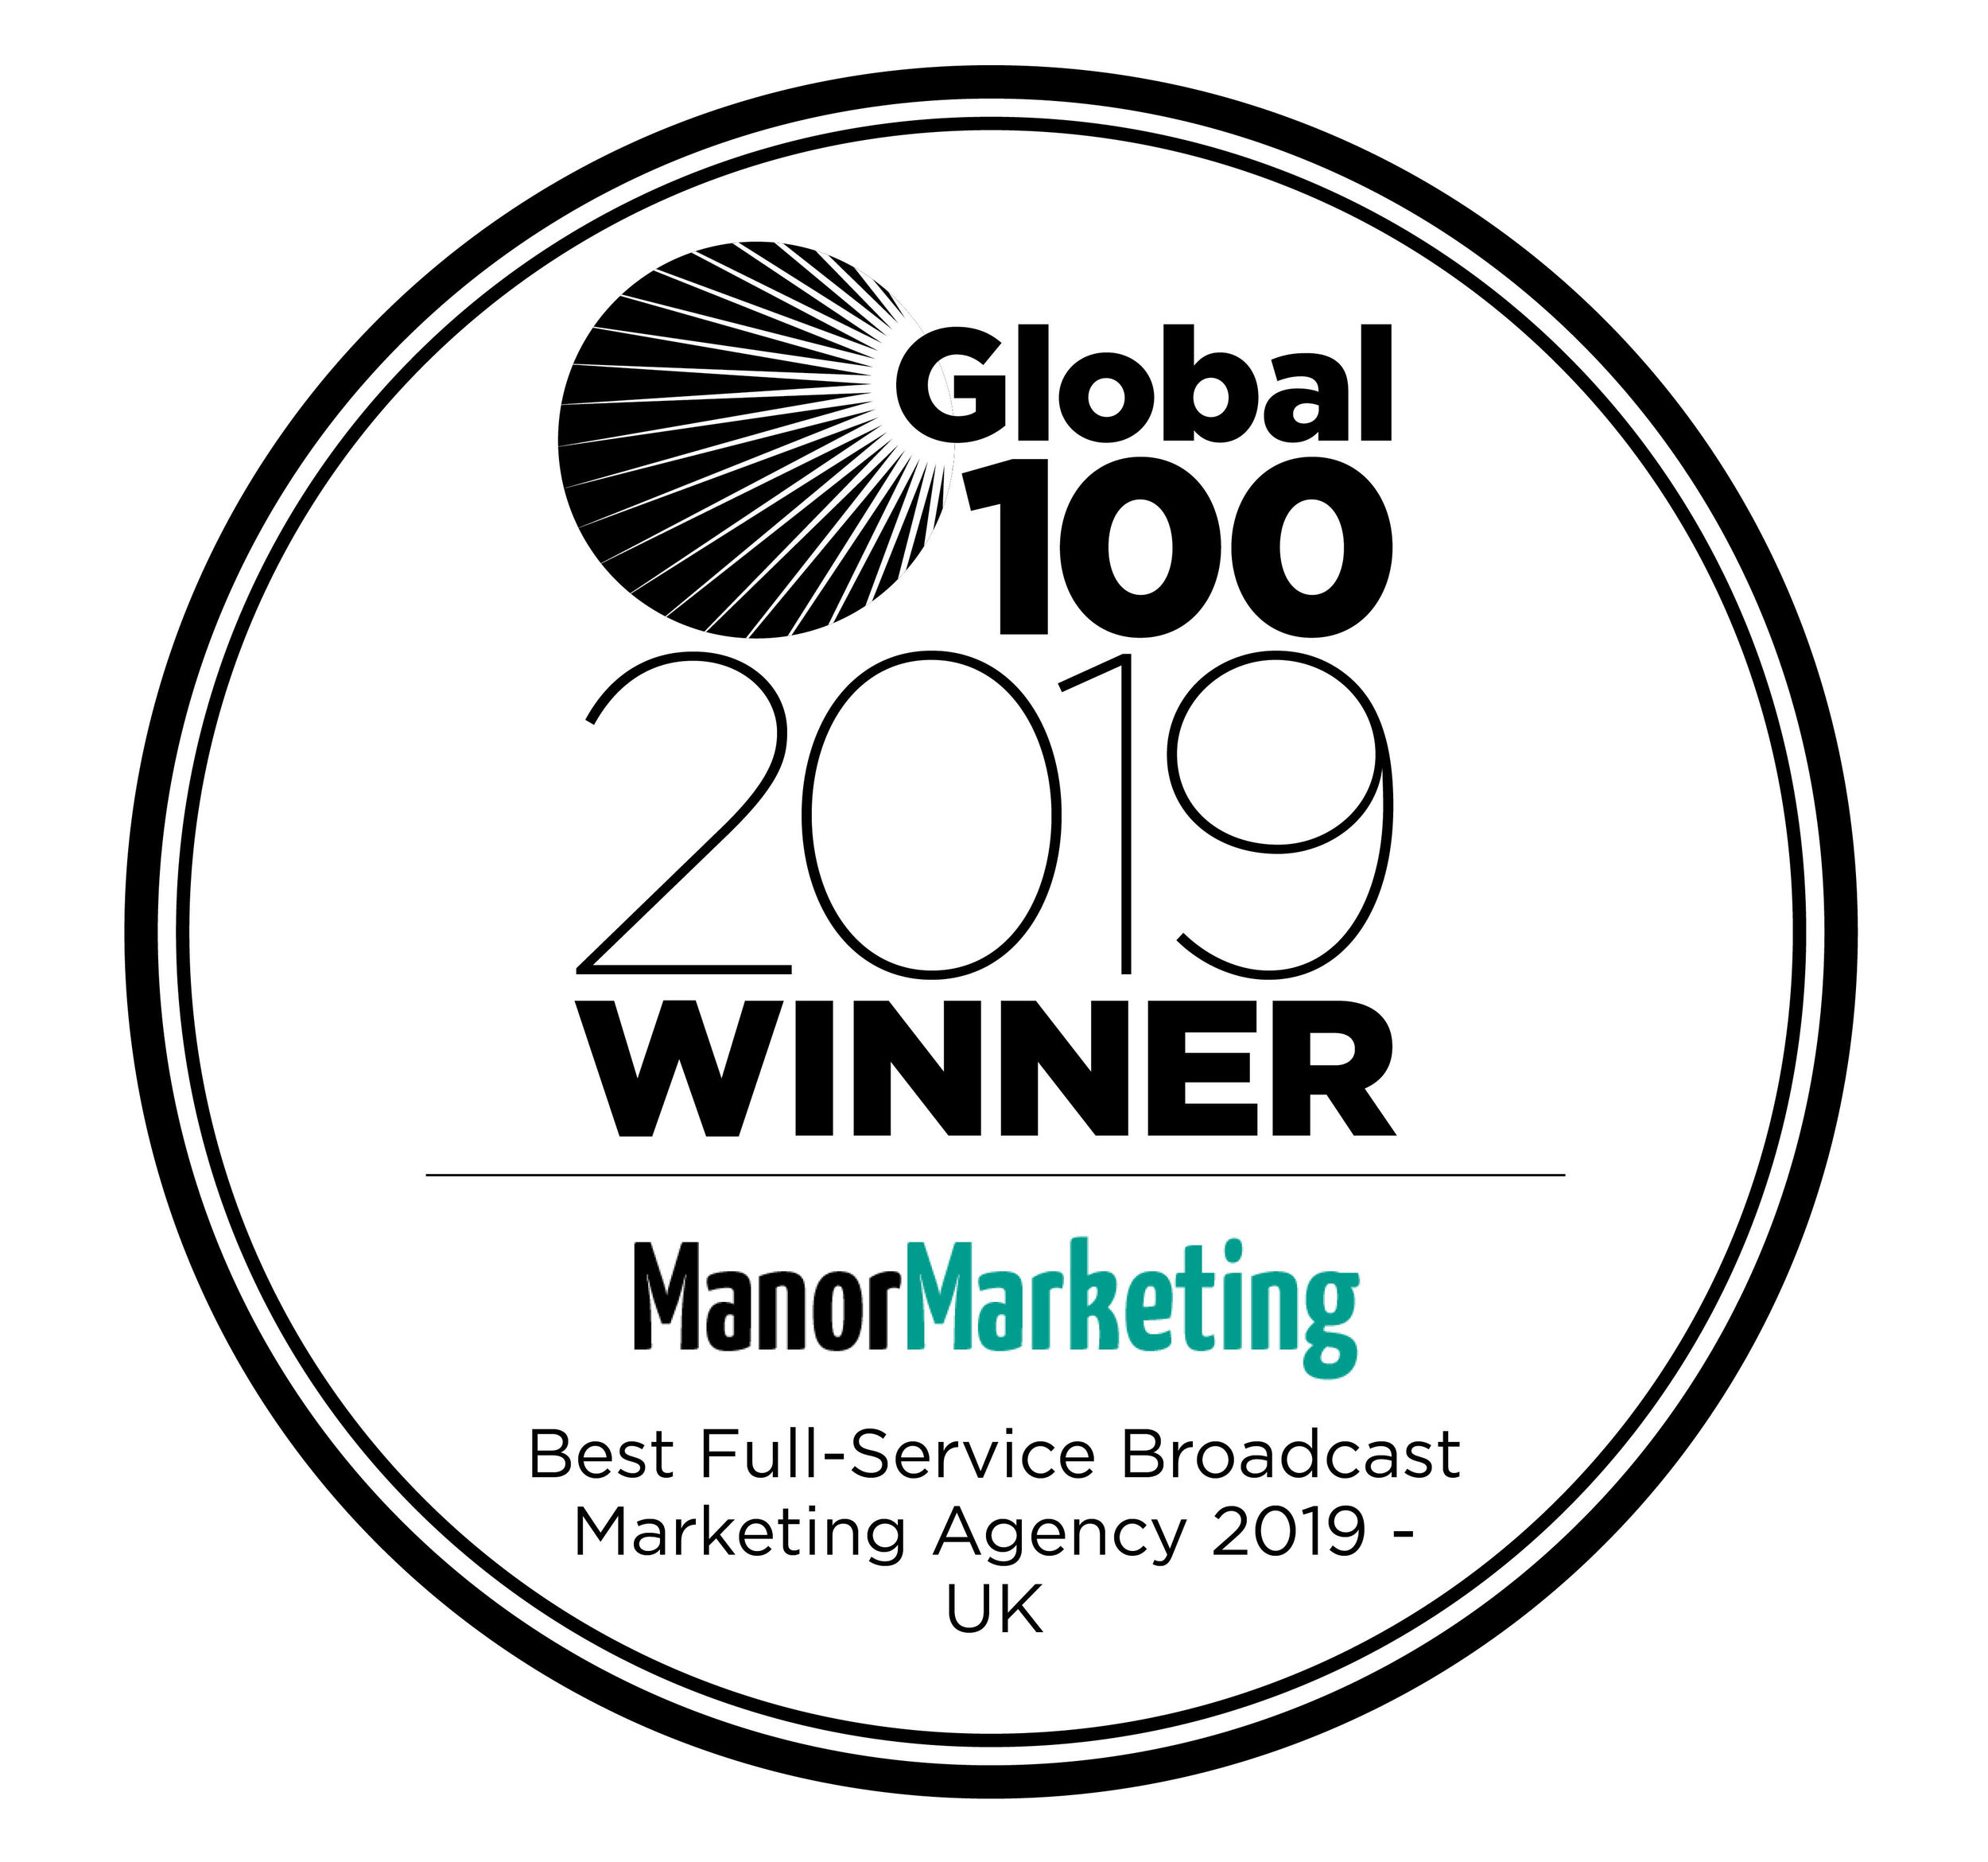 Global 100 - 2019 award logo Manor Marketing Consultants Ltd.jpg